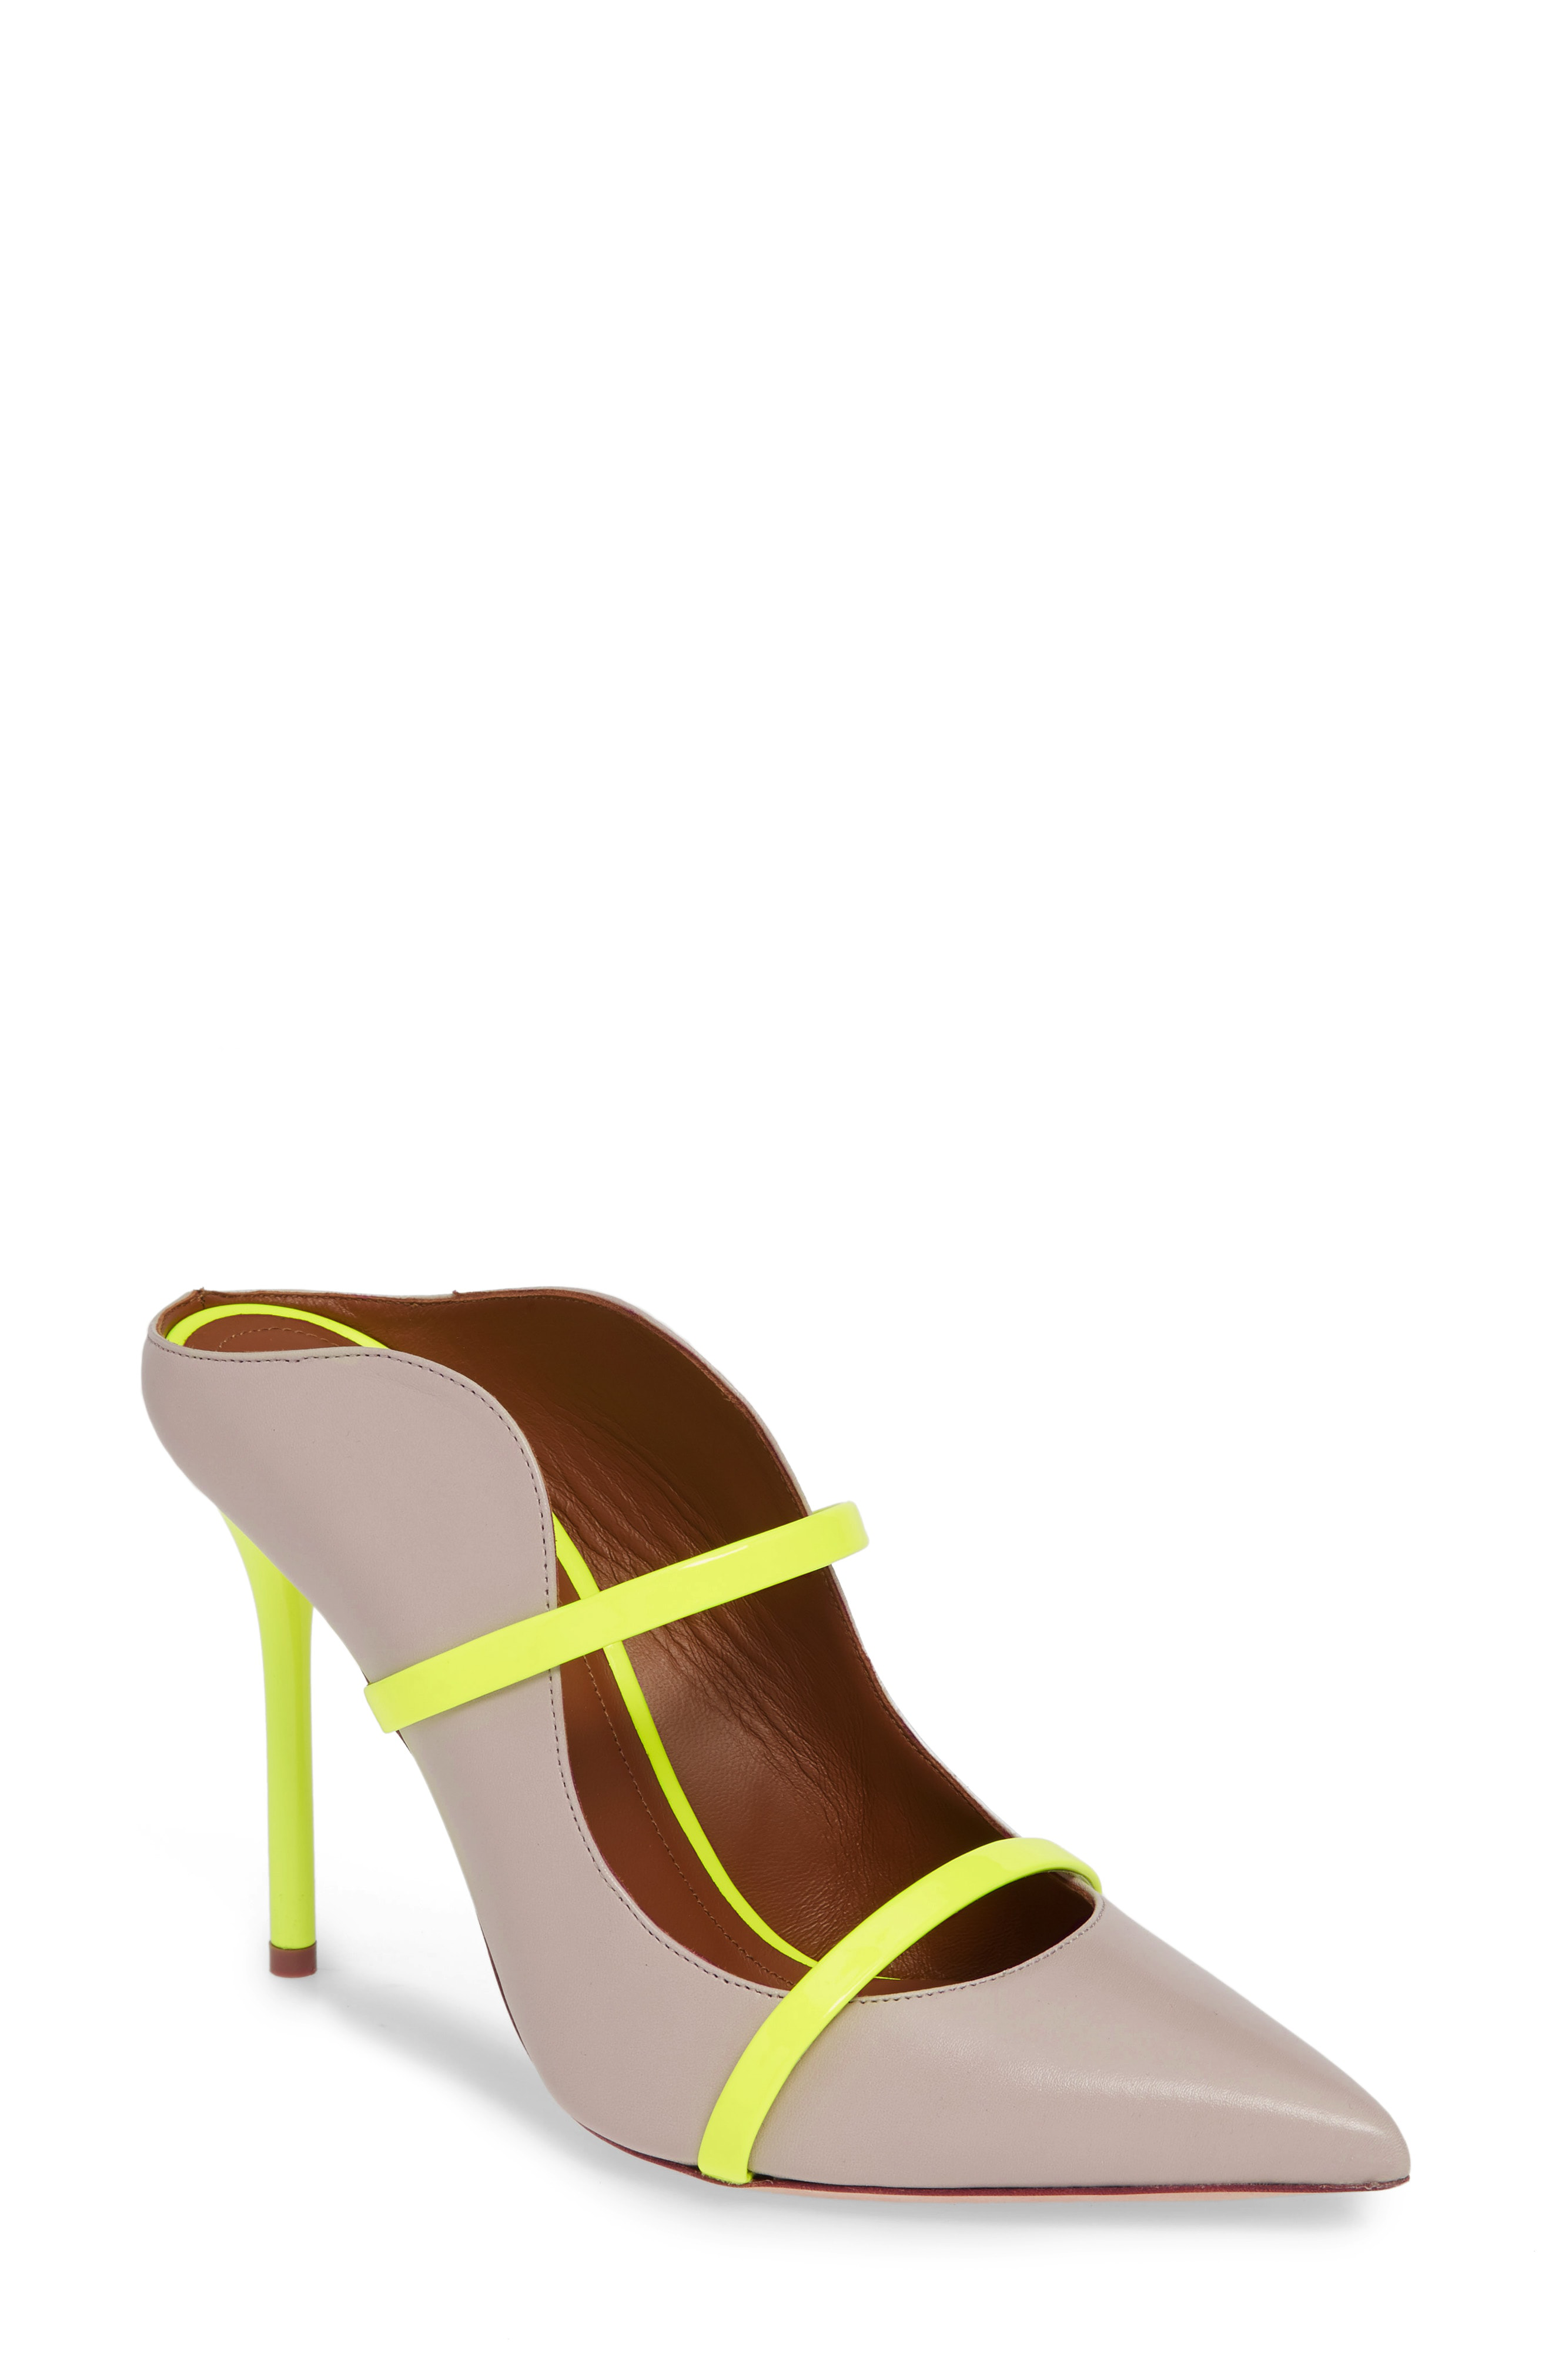 f6b5fa019d02 Malone Souliers Maureen Double Band Mule In Ice  Neon Yellow